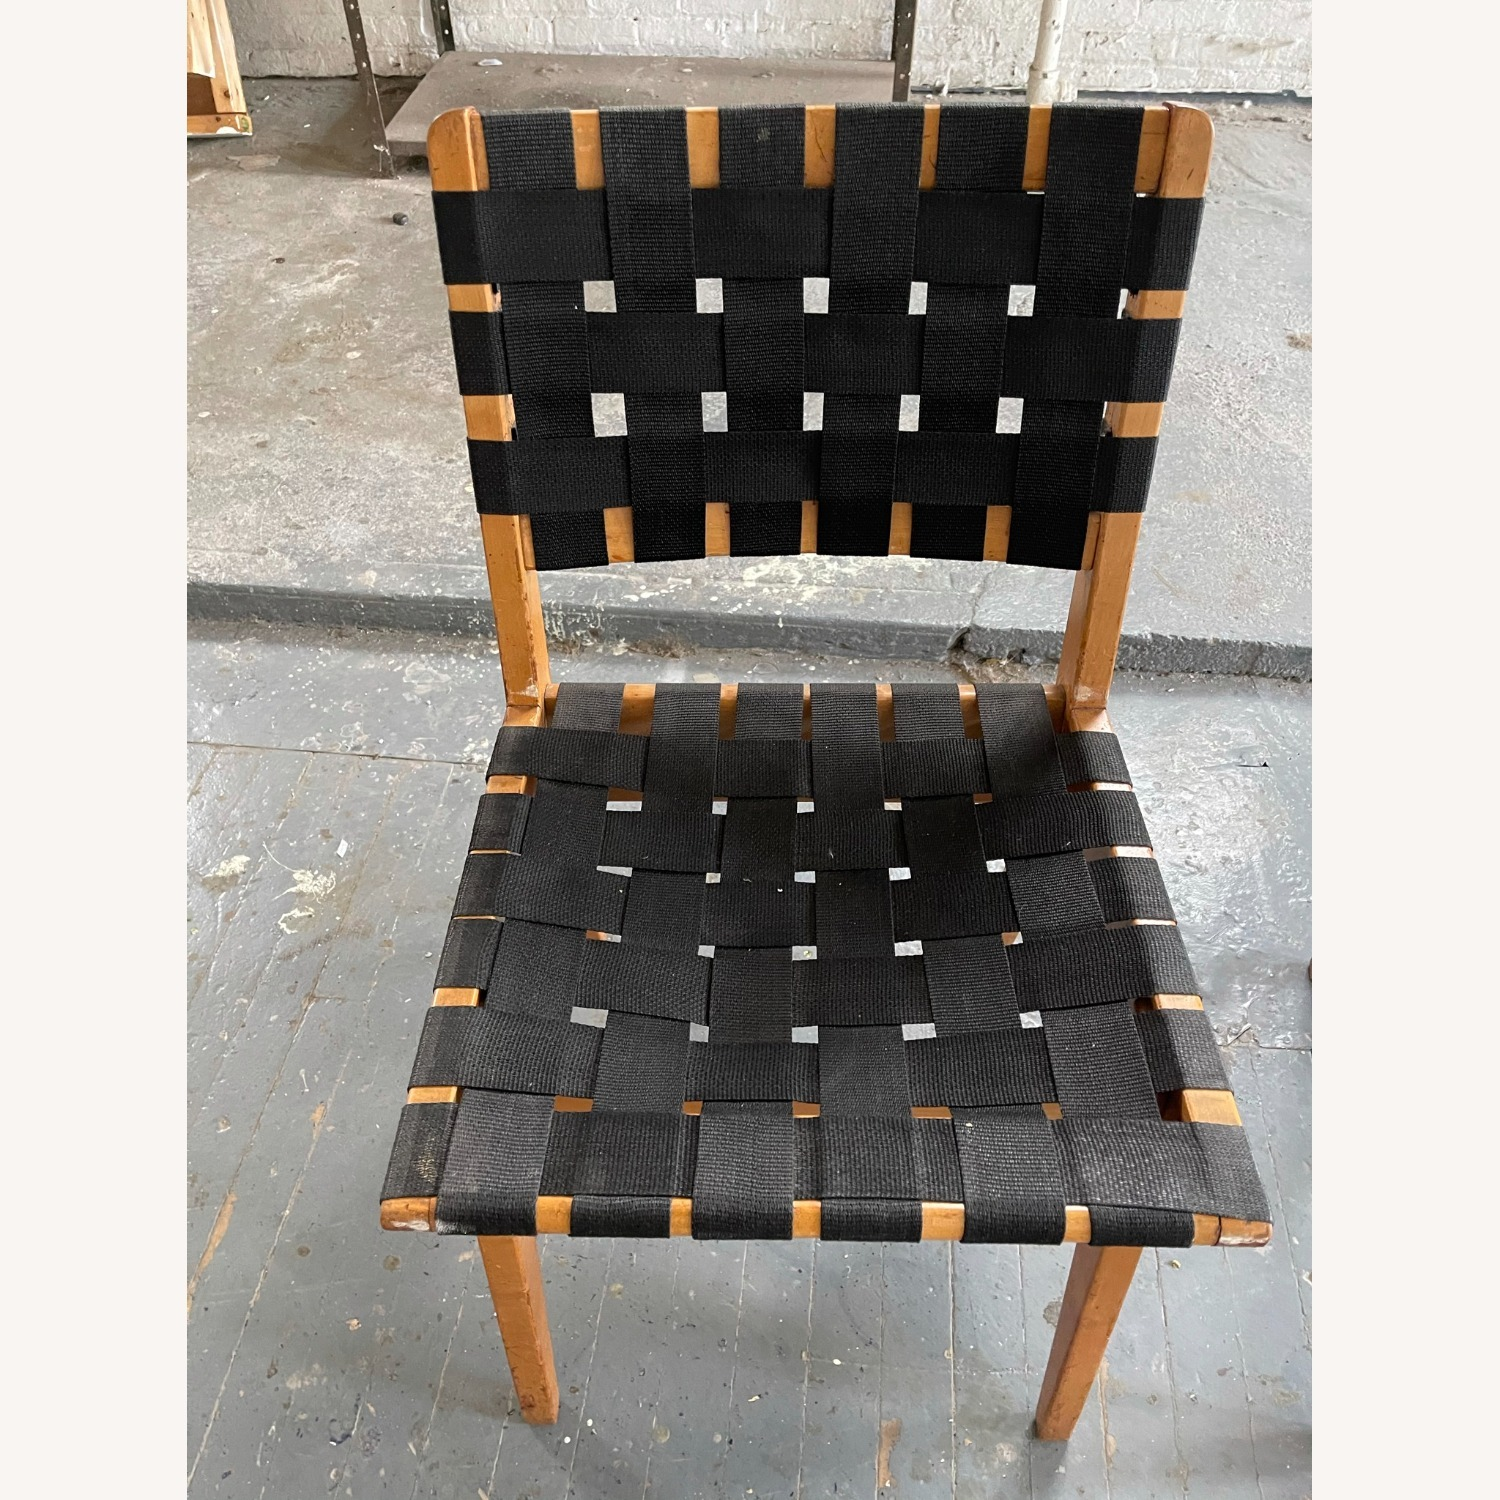 Knoll Vintage Jens Risom Chairs - image-1